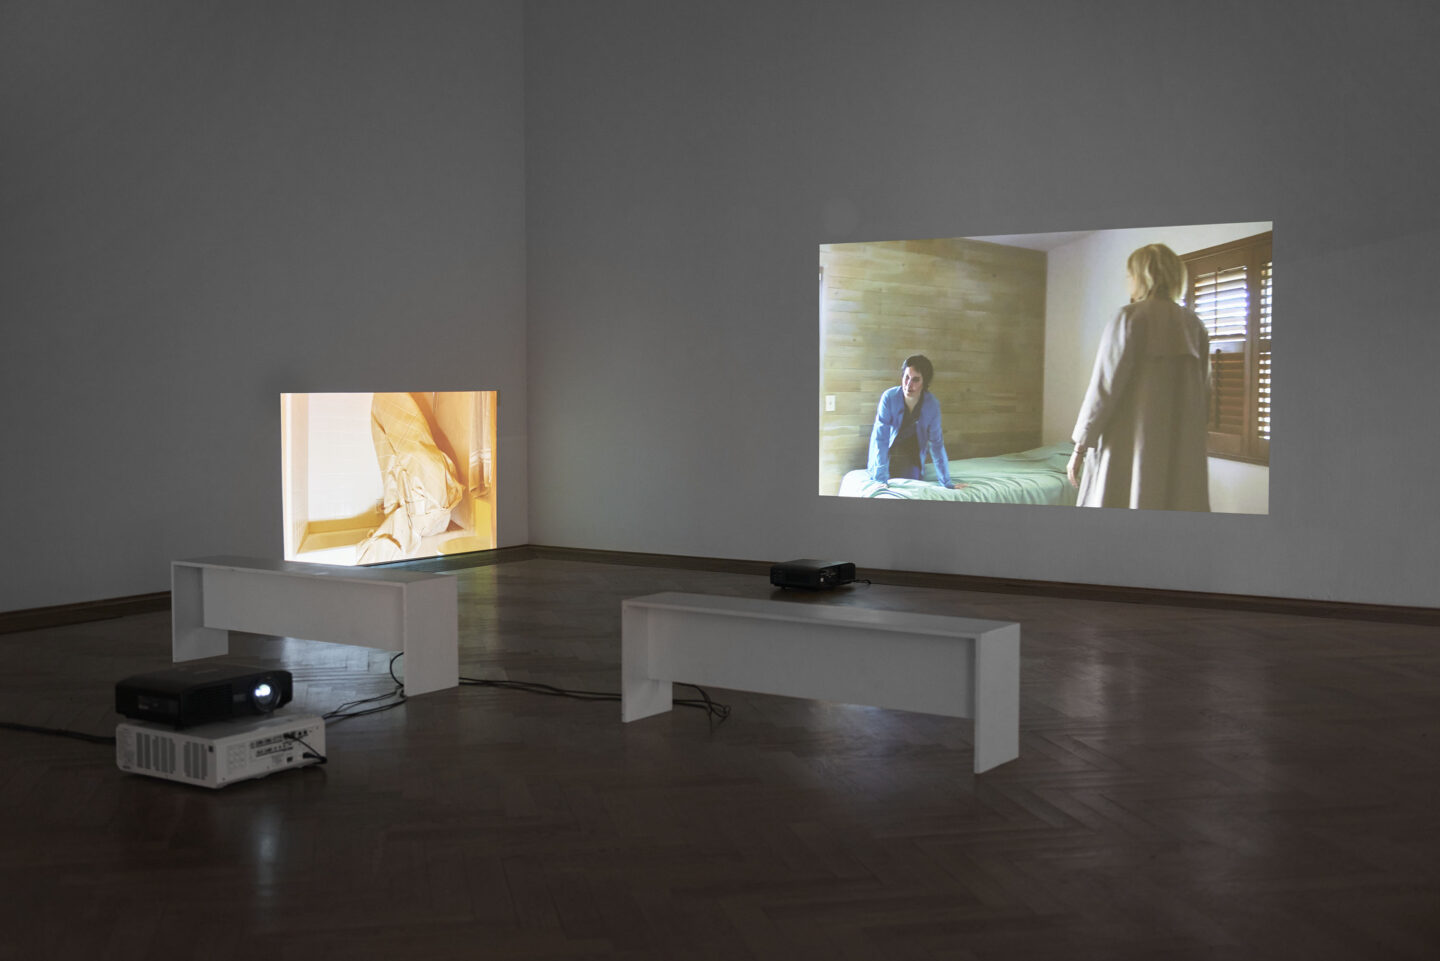 Exhibition View Kaari Upson Soloshow «Go Back the Way You Came; view on Prairie Fundamentalism, 2019, and A Place For a Snake, 2019» at Kunsthalle Basel, Basel, 2019 / Photo: Philipp Hänger / Courtesy: the artist and Kunsthalle Basel